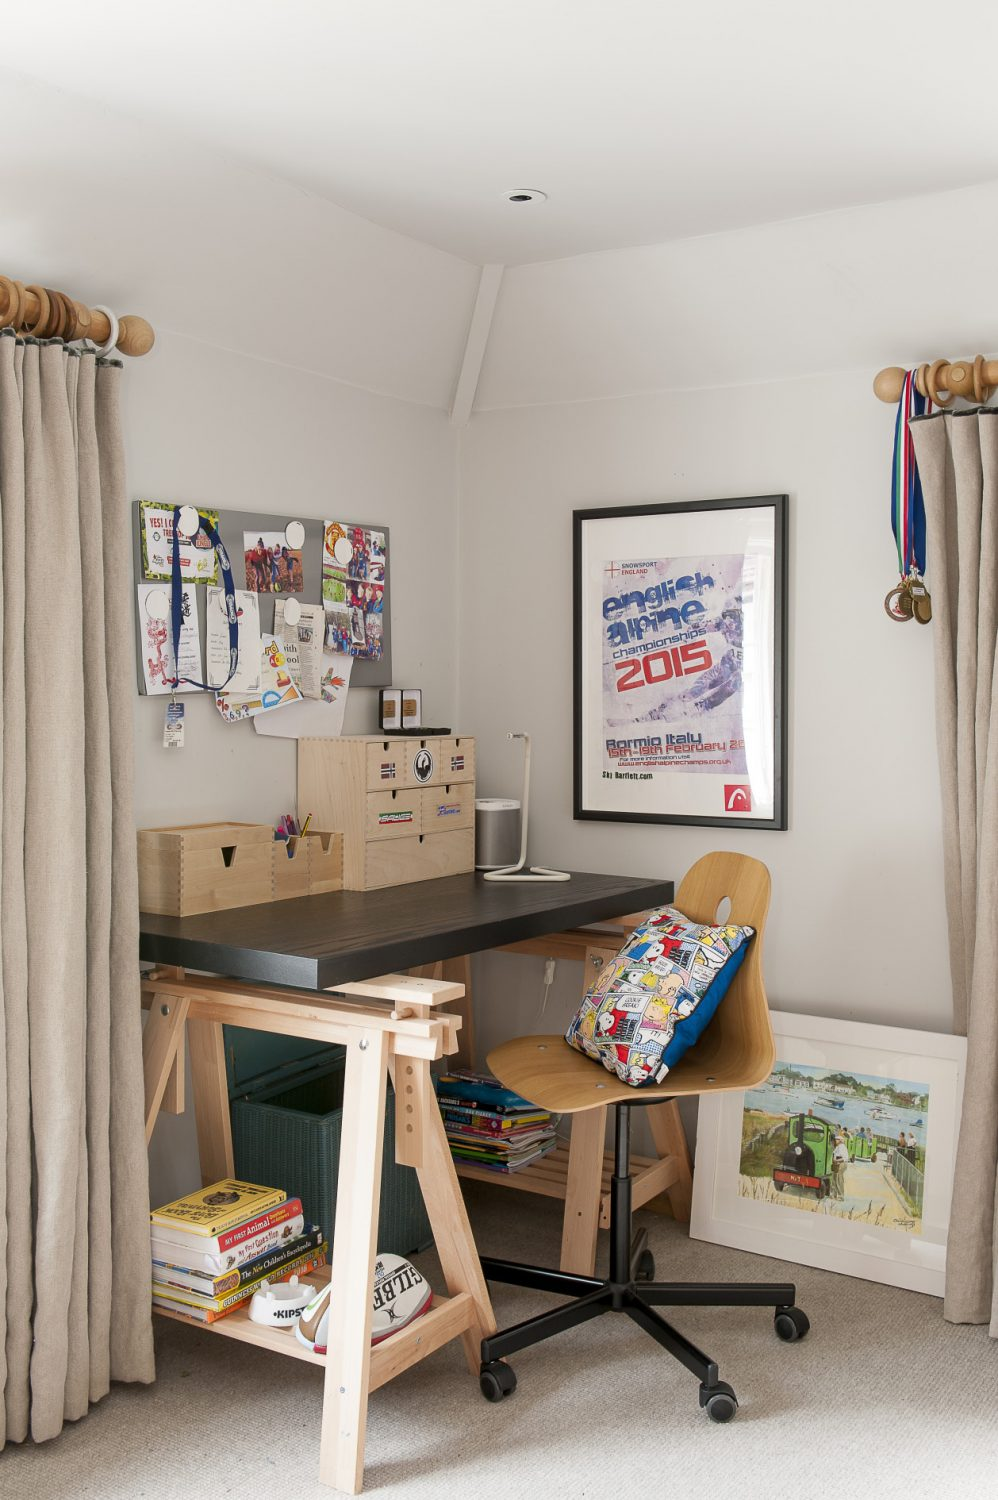 The boys' interest in skiing is evident in their bright and airy rooms